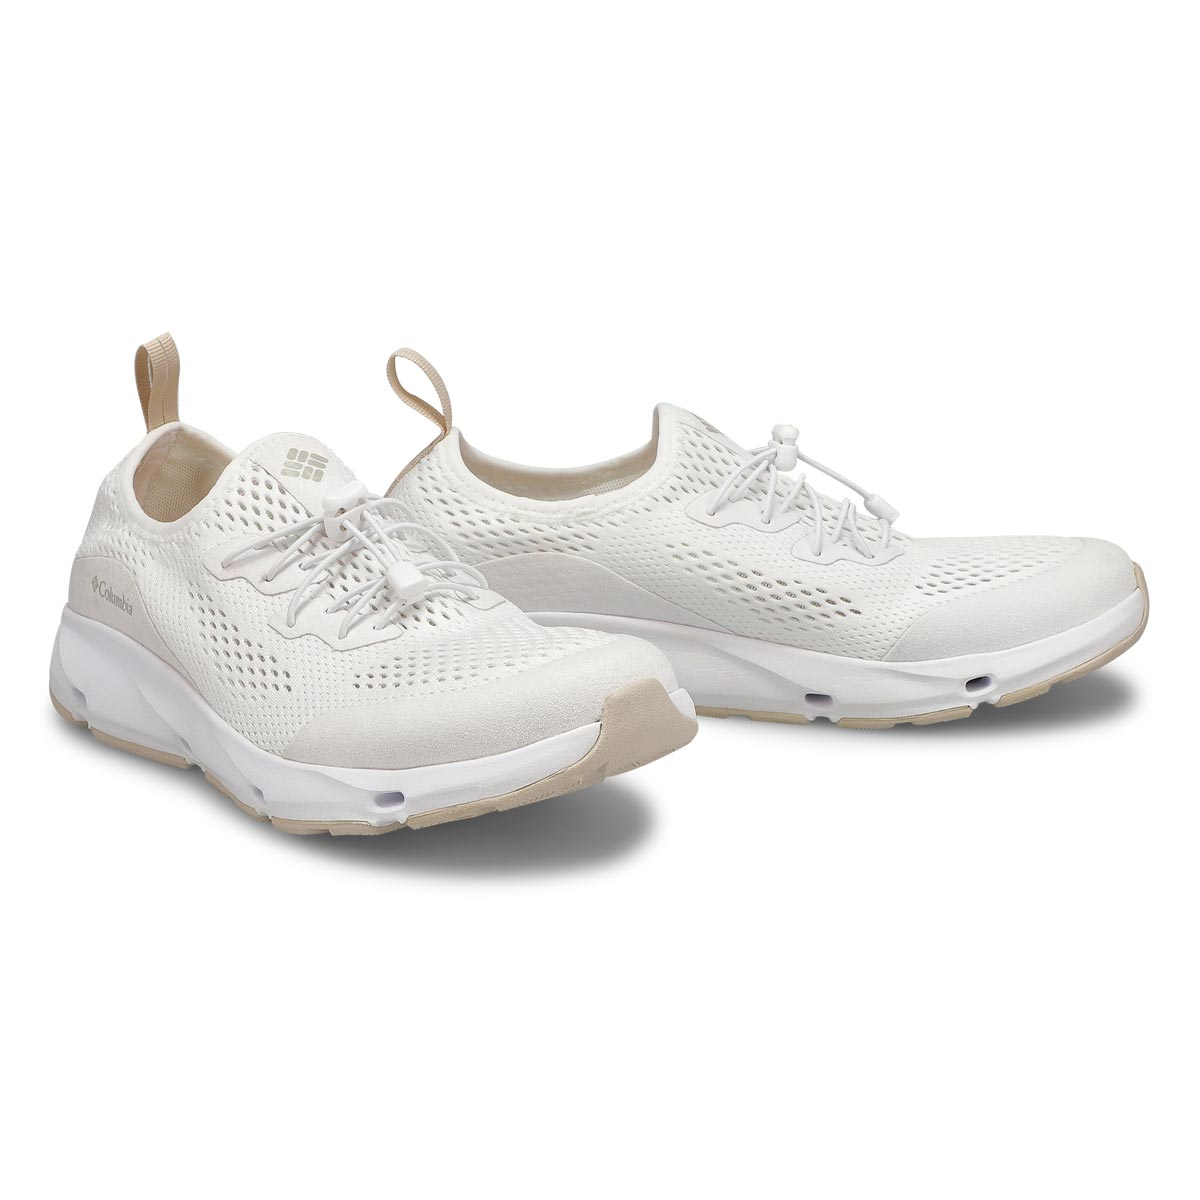 Lds Columbia Vent white fashion sneaker